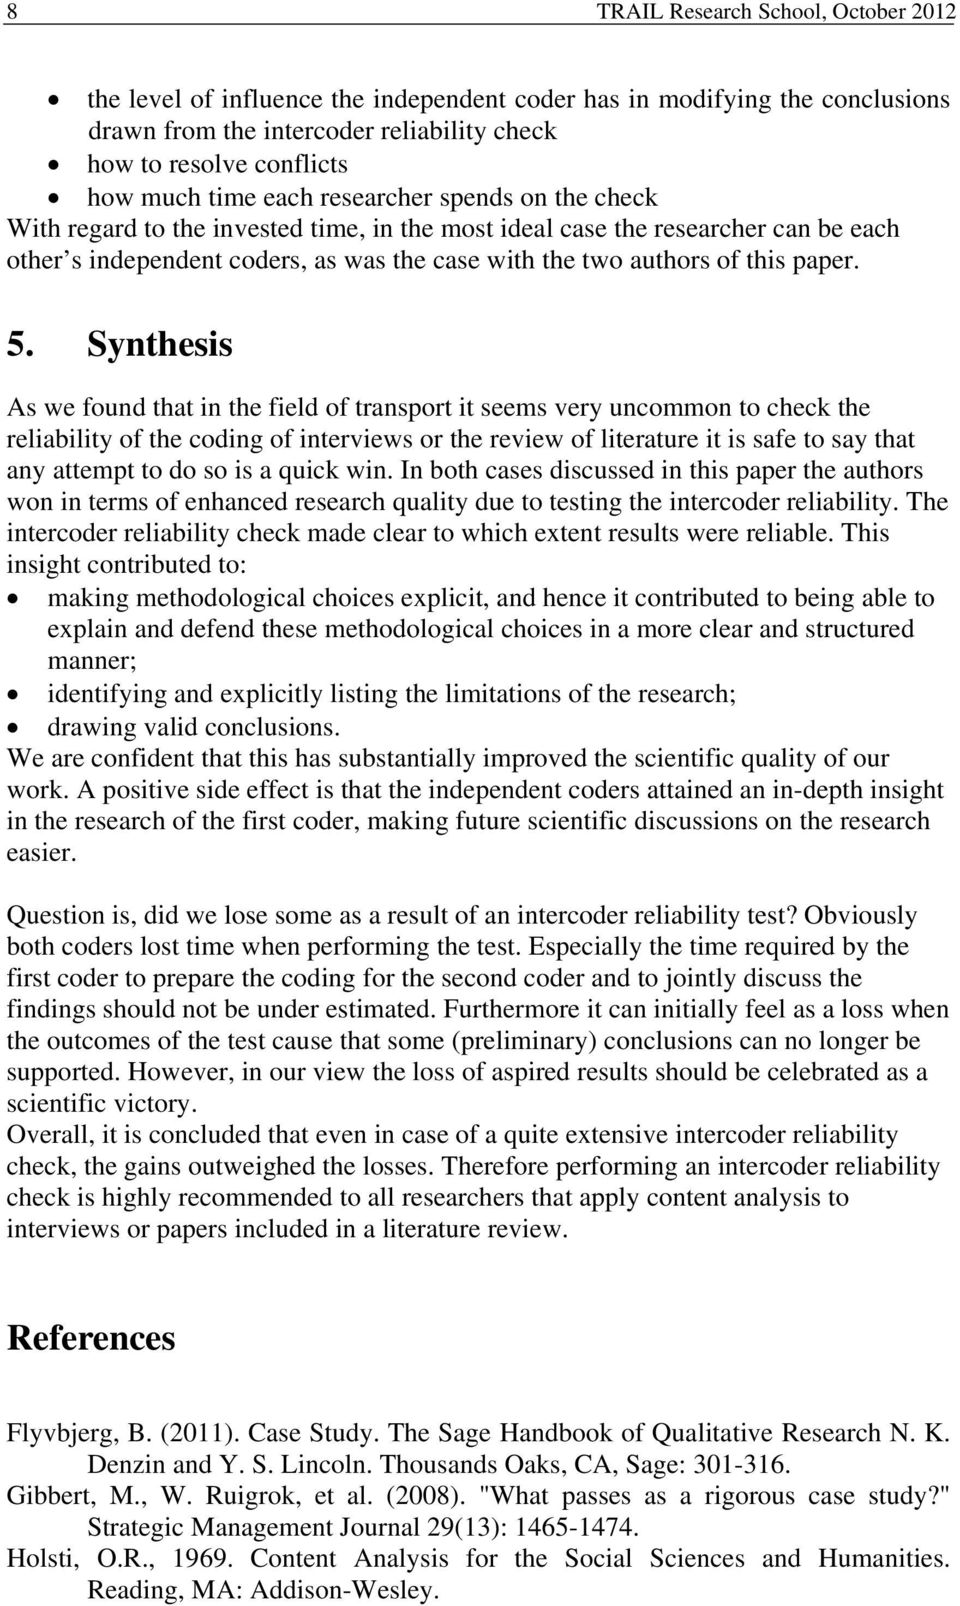 5. Synthesis As we found that in the field of transport it seems very uncommon to check the reliability of the coding of interviews or the review of literature it is safe to say that any attempt to